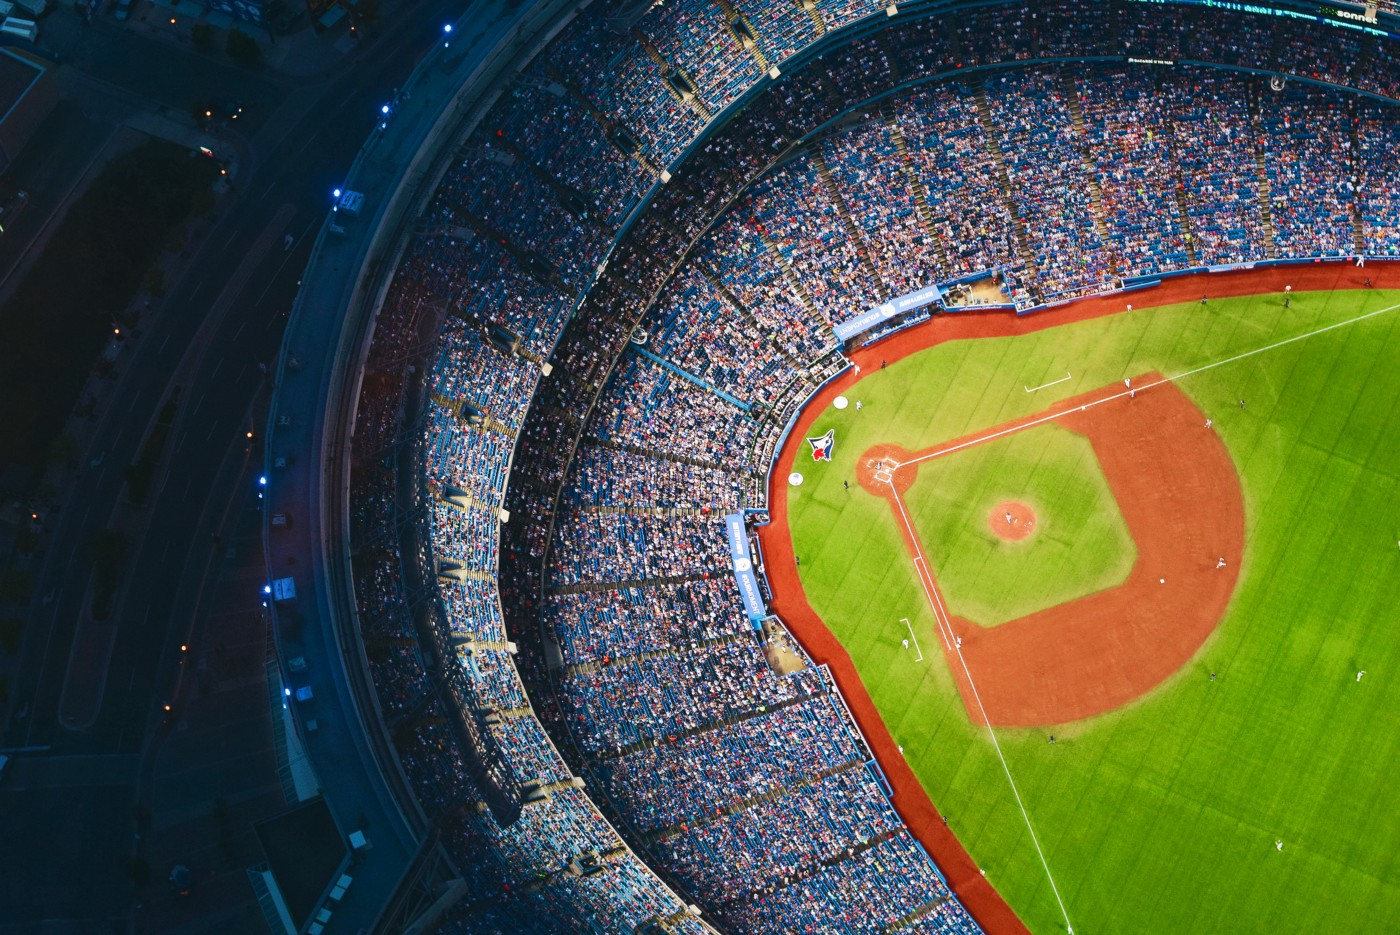 Stadium with a crowd for baseball